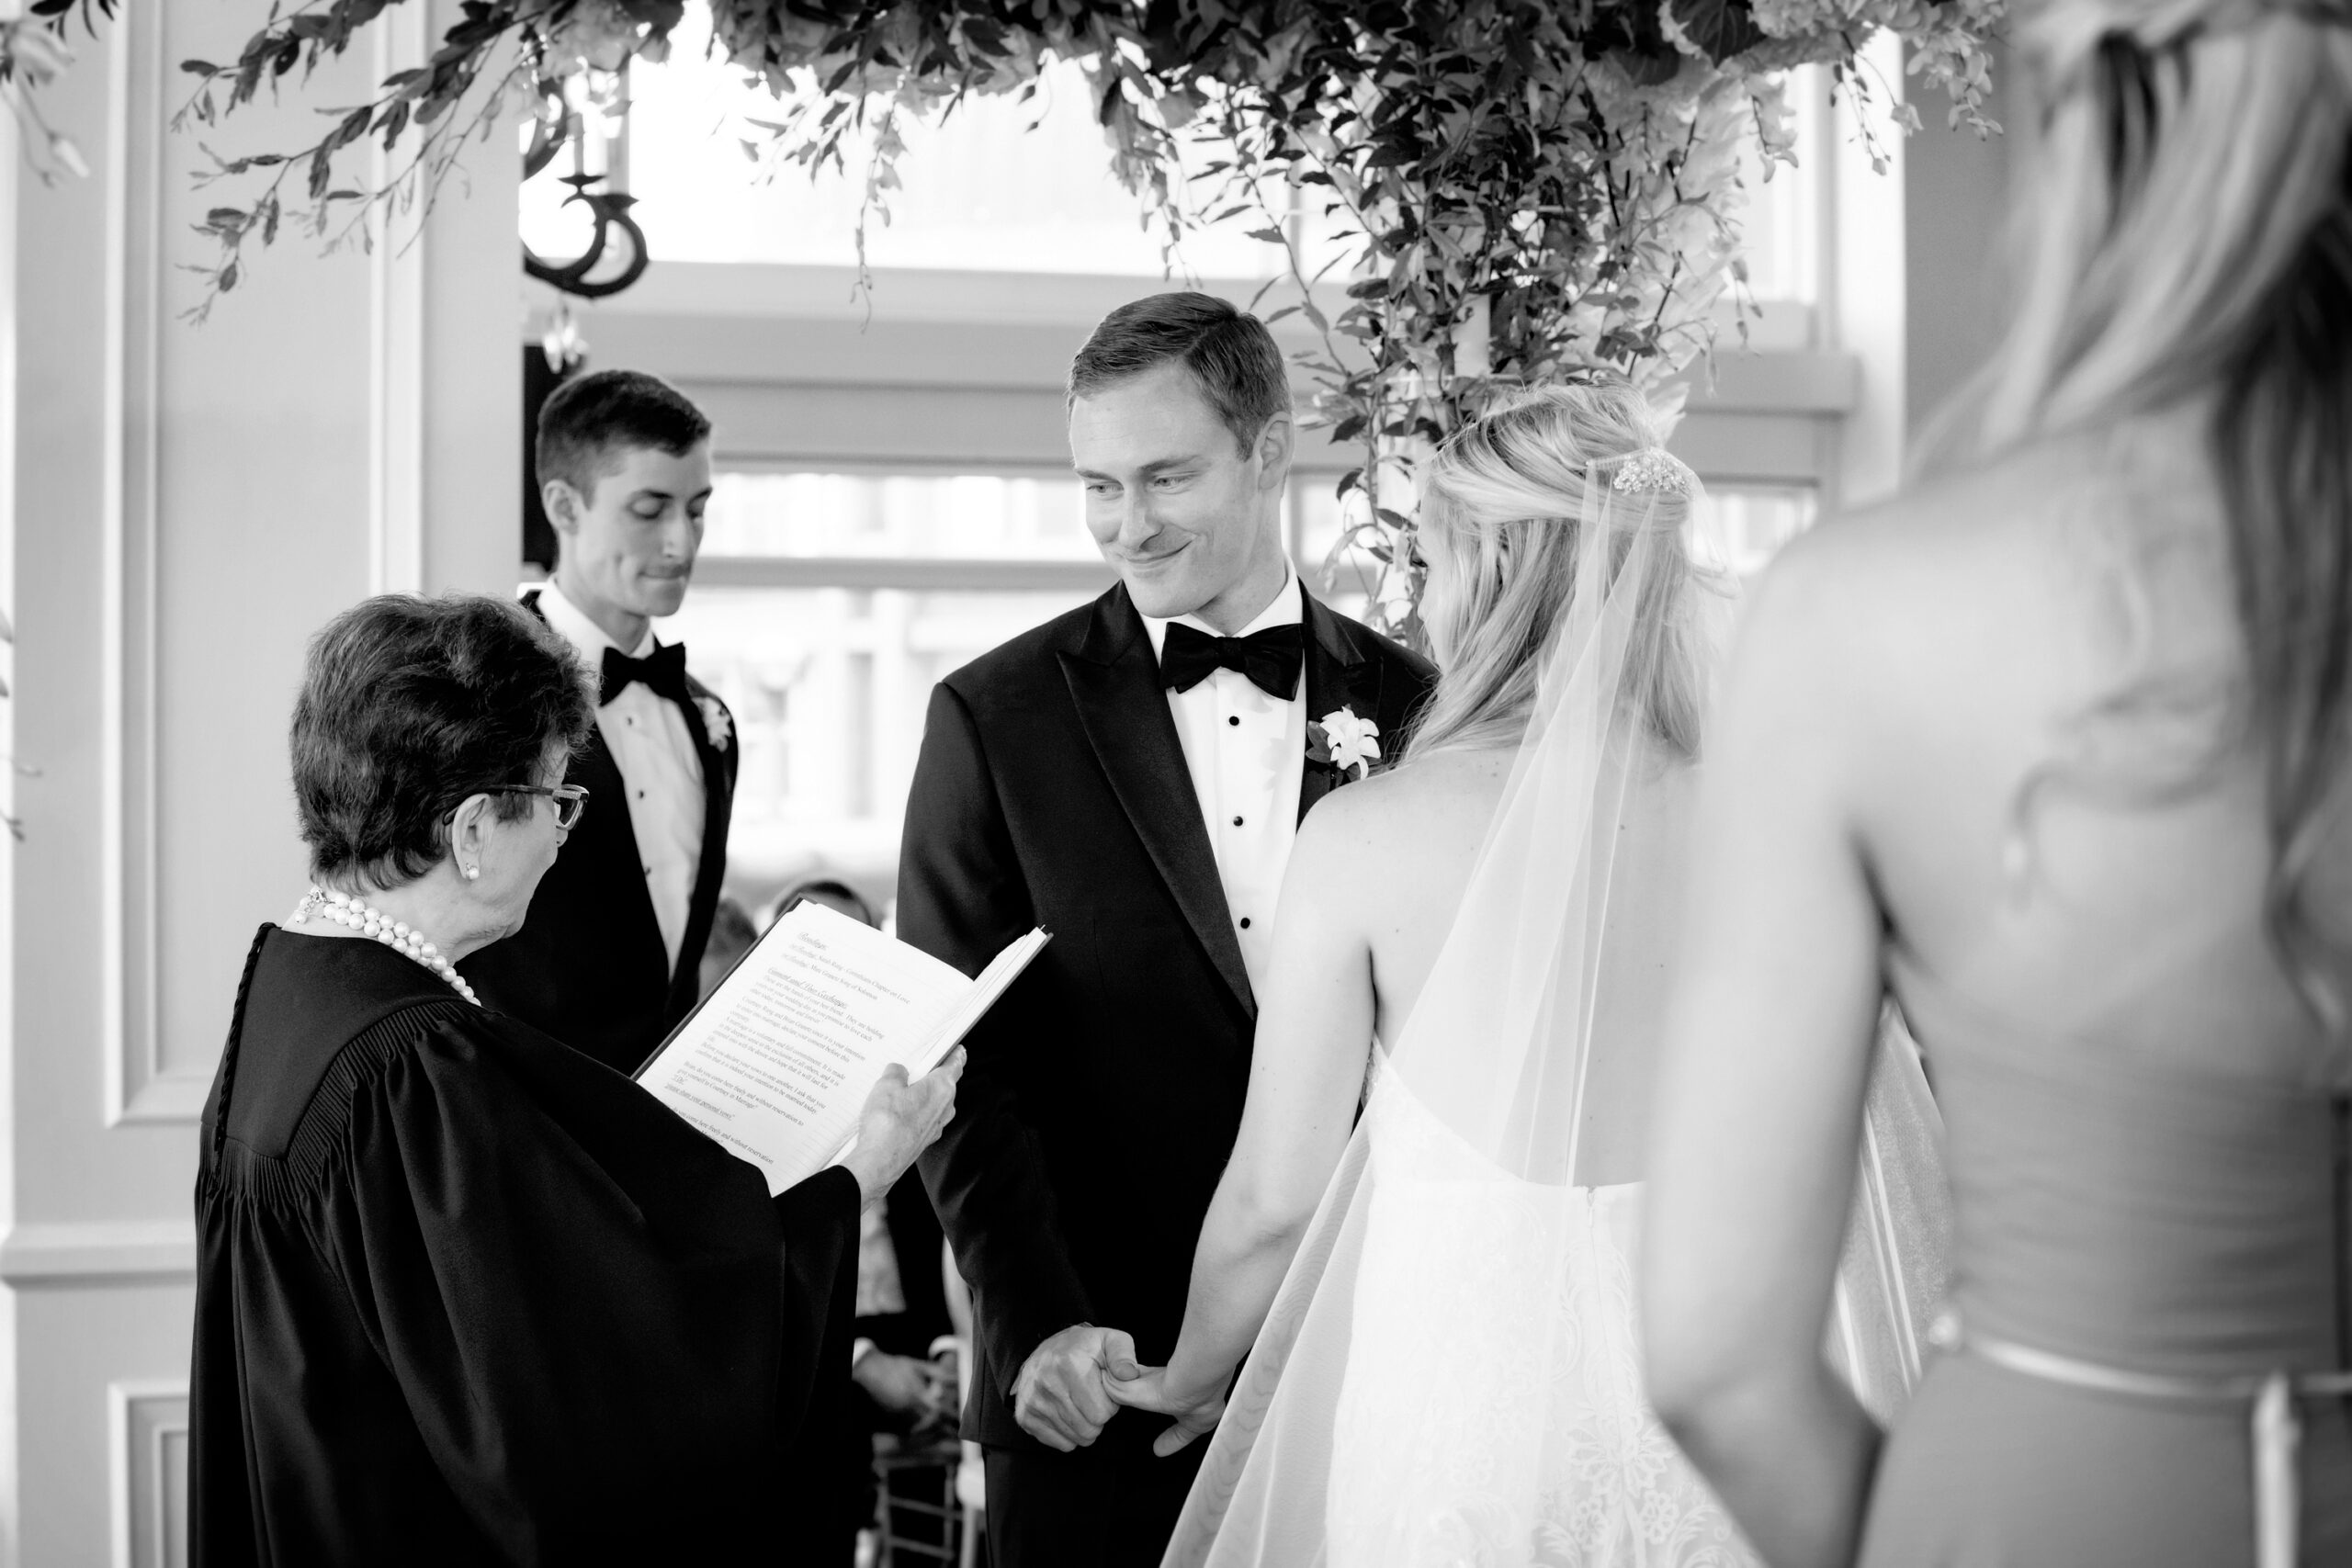 Officiating Vows